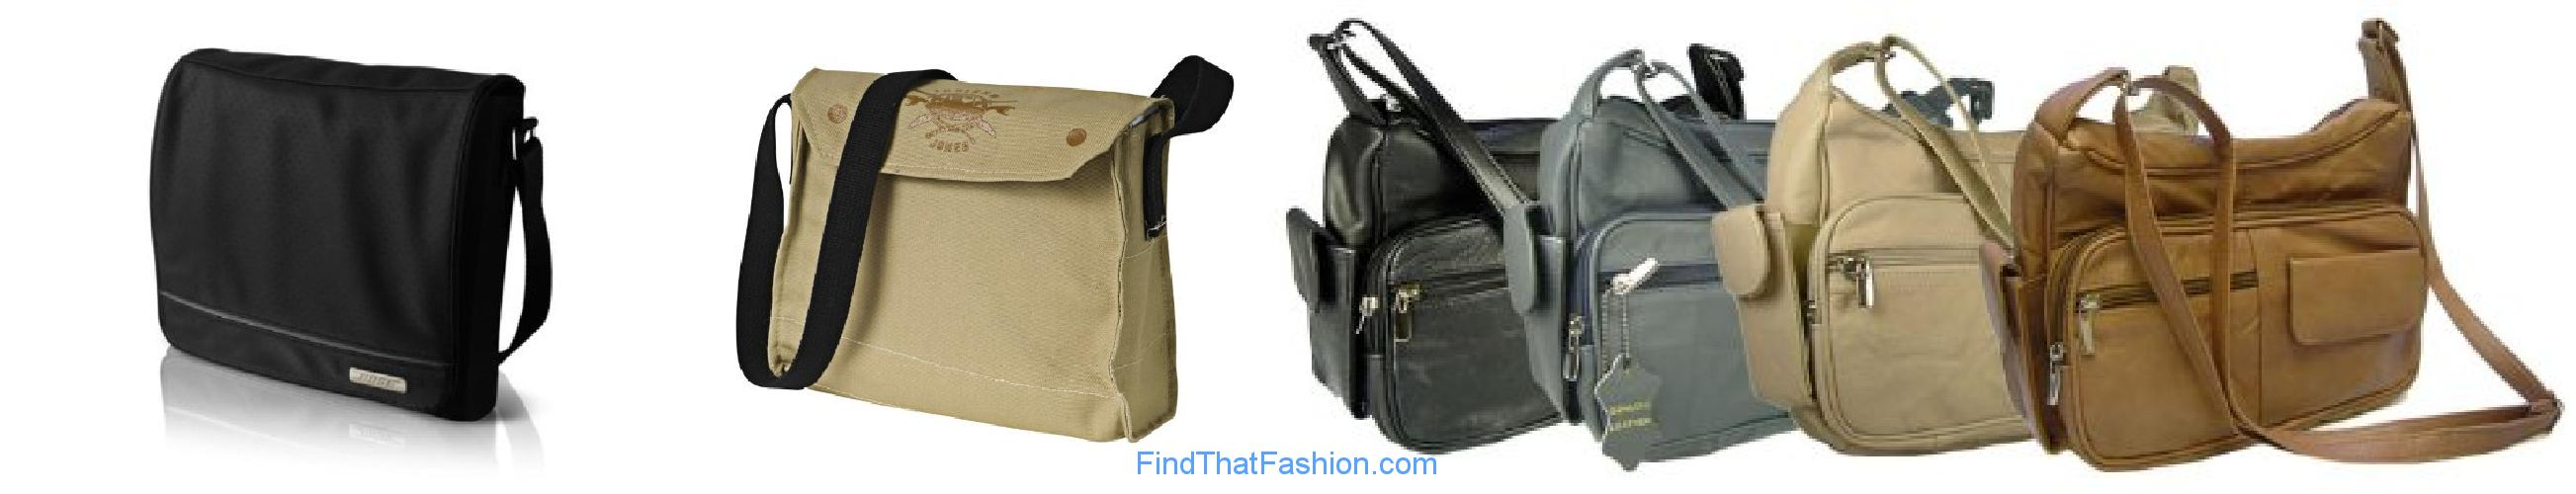 Handbag Inc Mens Satchels